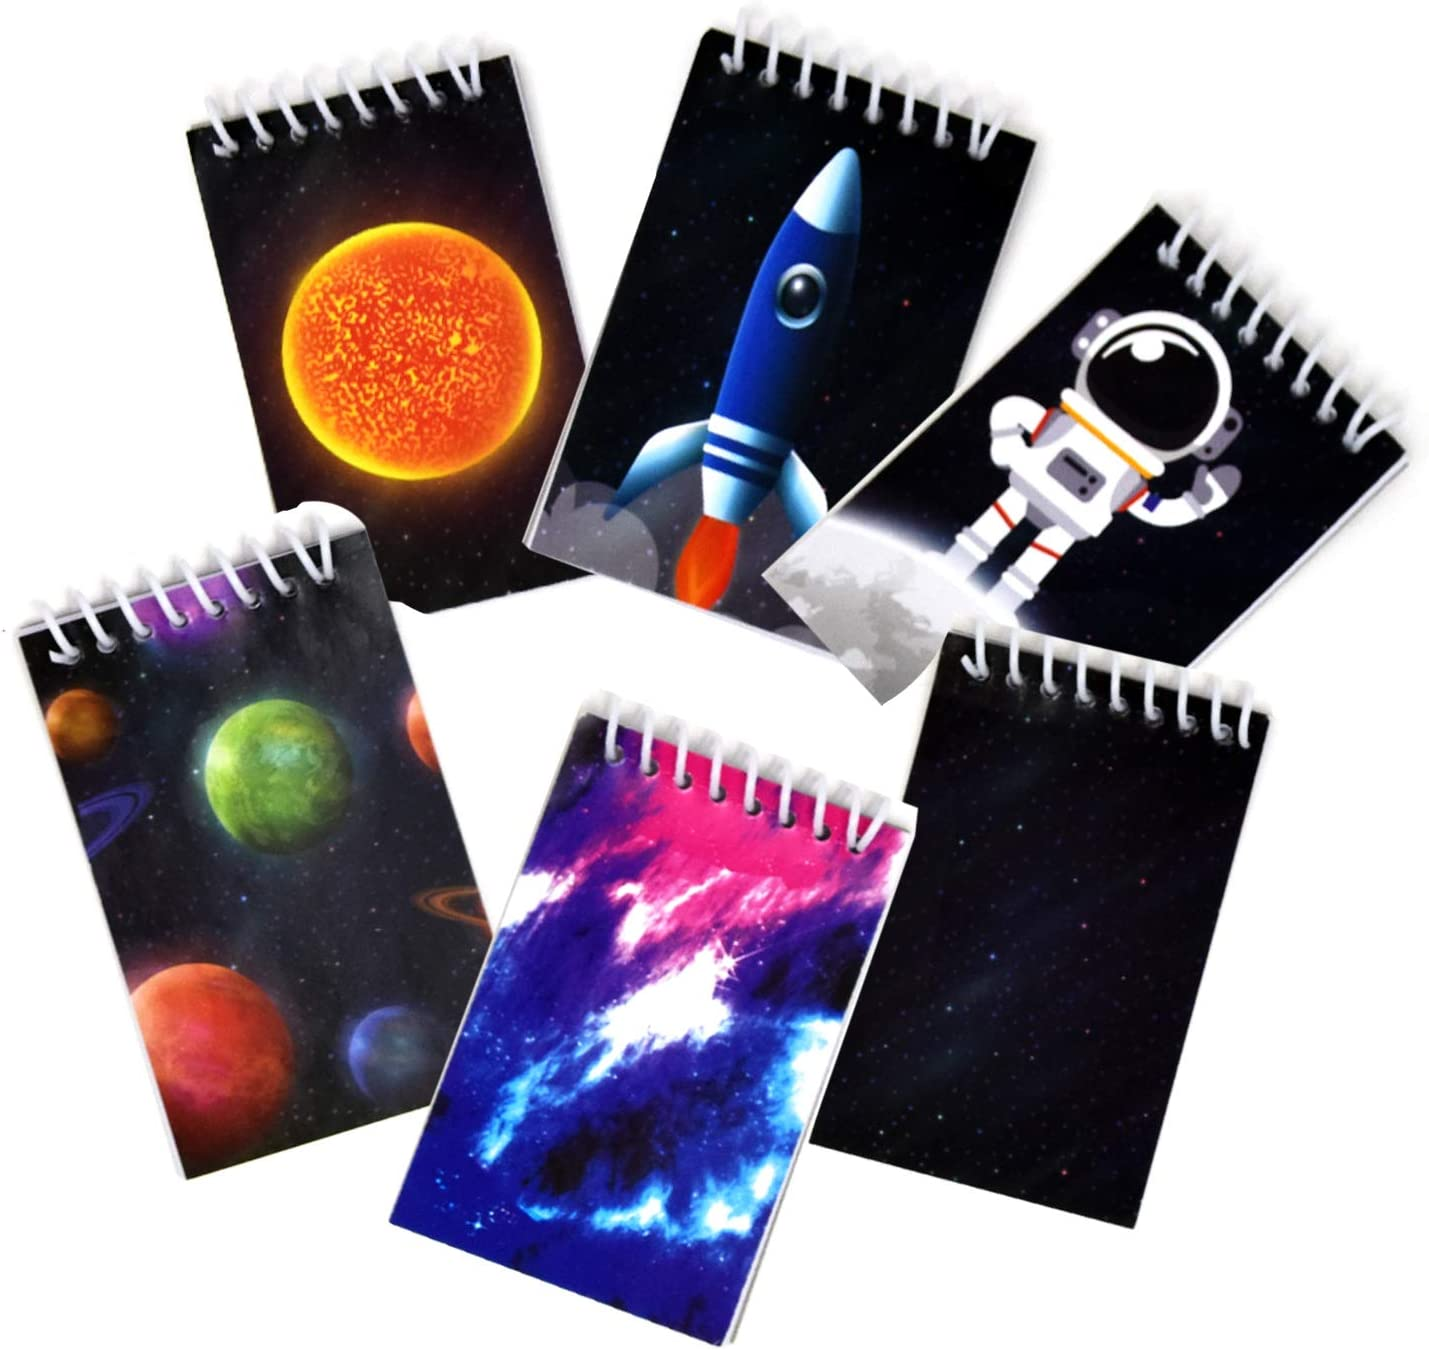 48 Count Outer Space Galaxy Mini Notepads Science Moon Rocket Ship Theme Memo Spiral Notebooks for Kids Boys Girls Solar System Planet Notepads Birthday Party Favor Supplies & Teacher Classroom Reward